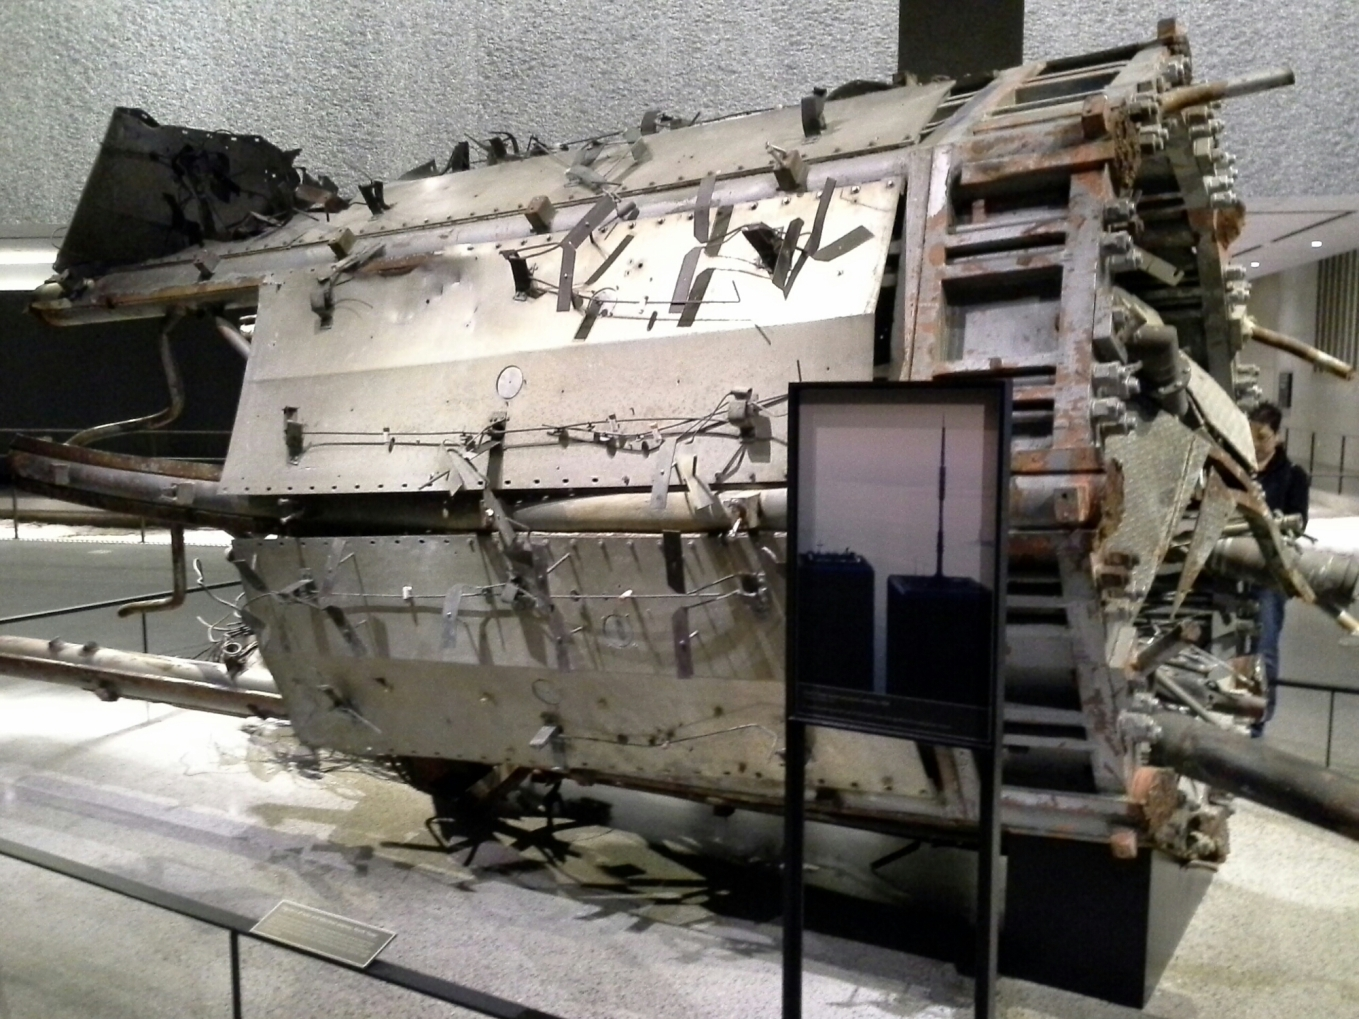 Part of the North Tower antenna at the 9-11 Museum